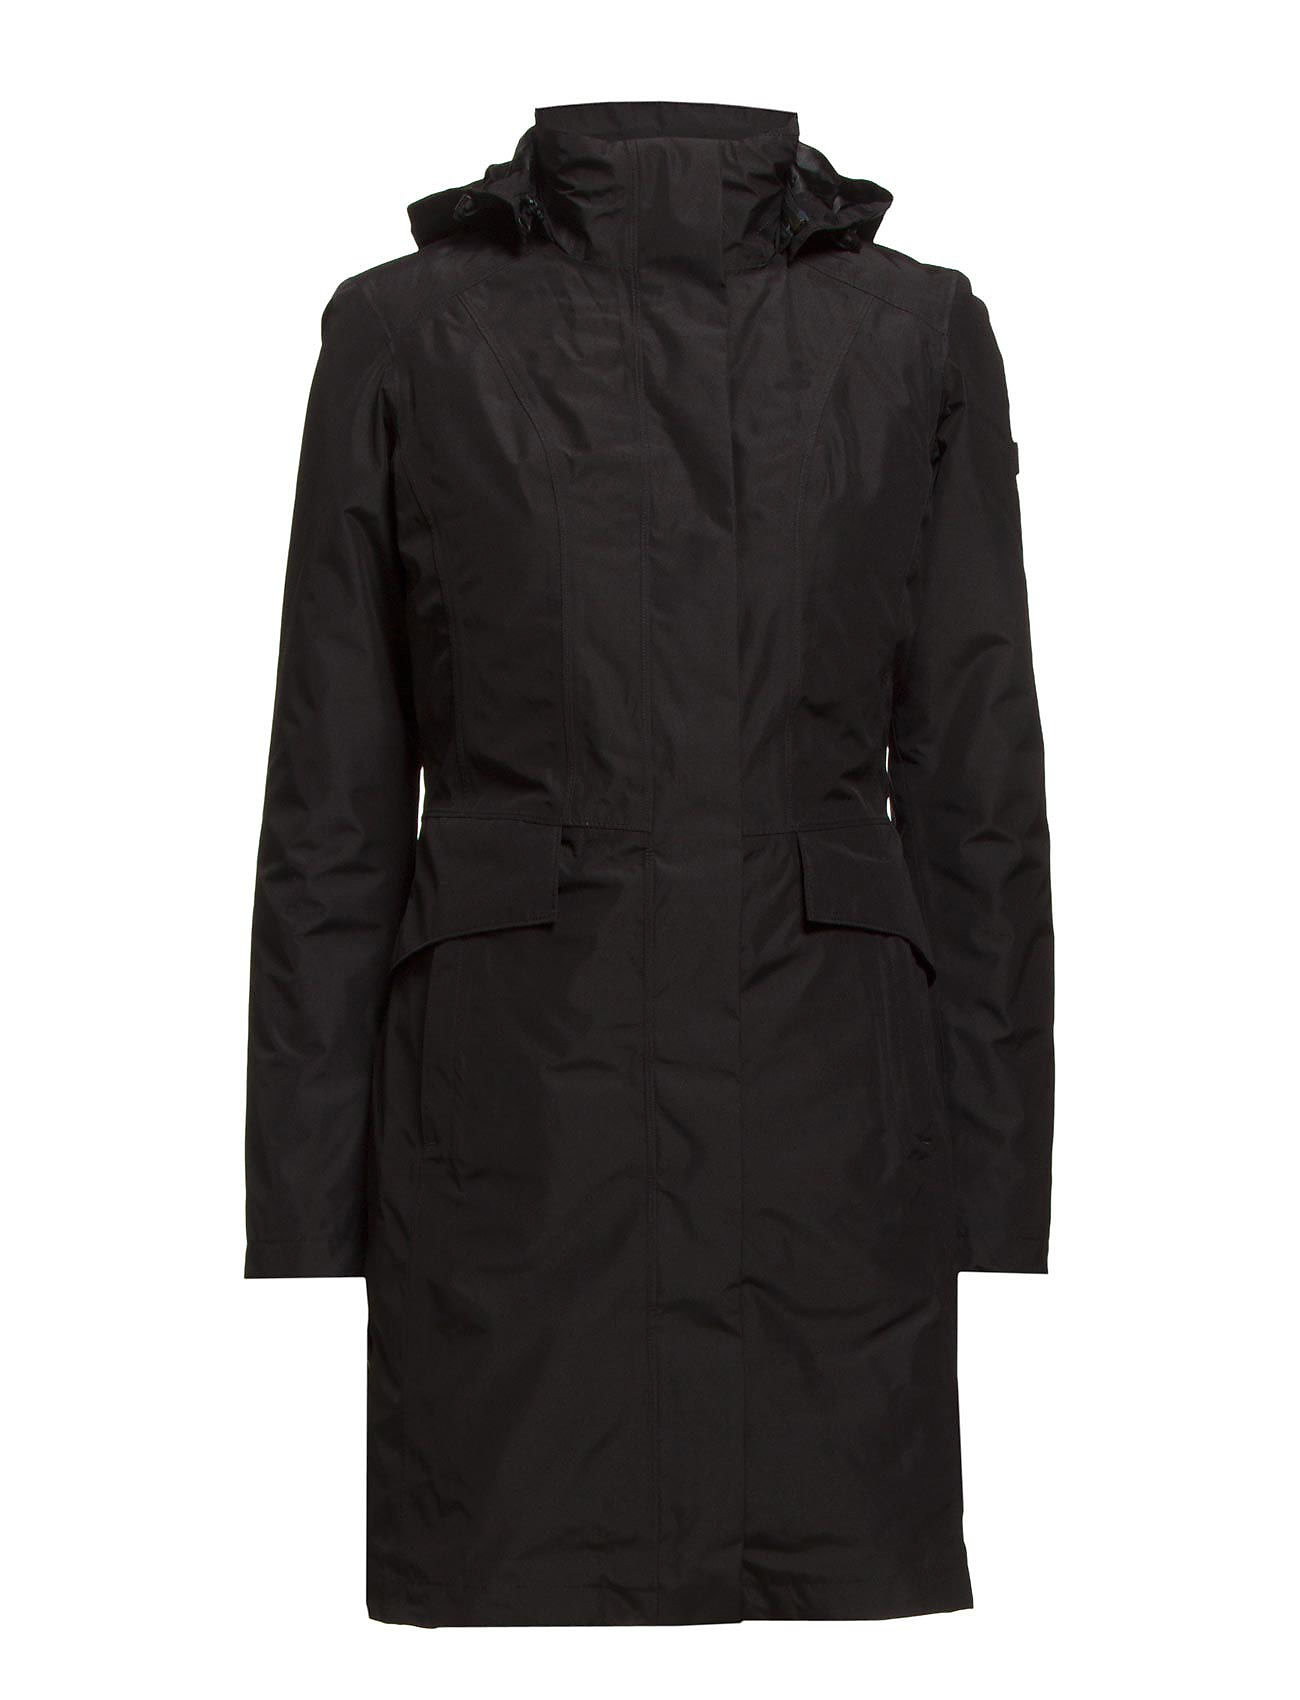 The North Face W SUZANNE TRI JKT - JK3 TNF BLACK